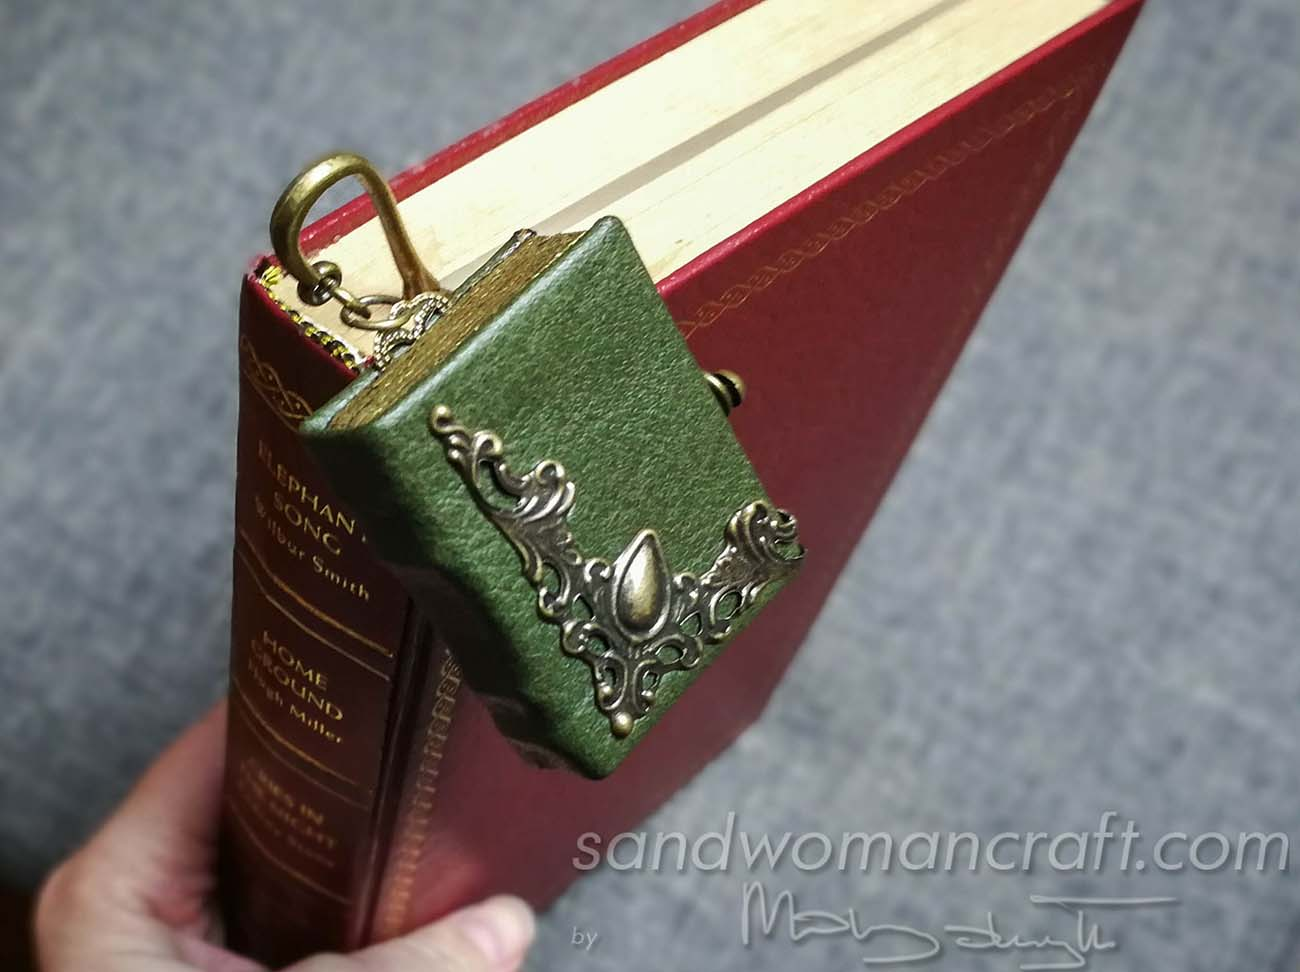 Miniature book is embellished with metal filigree